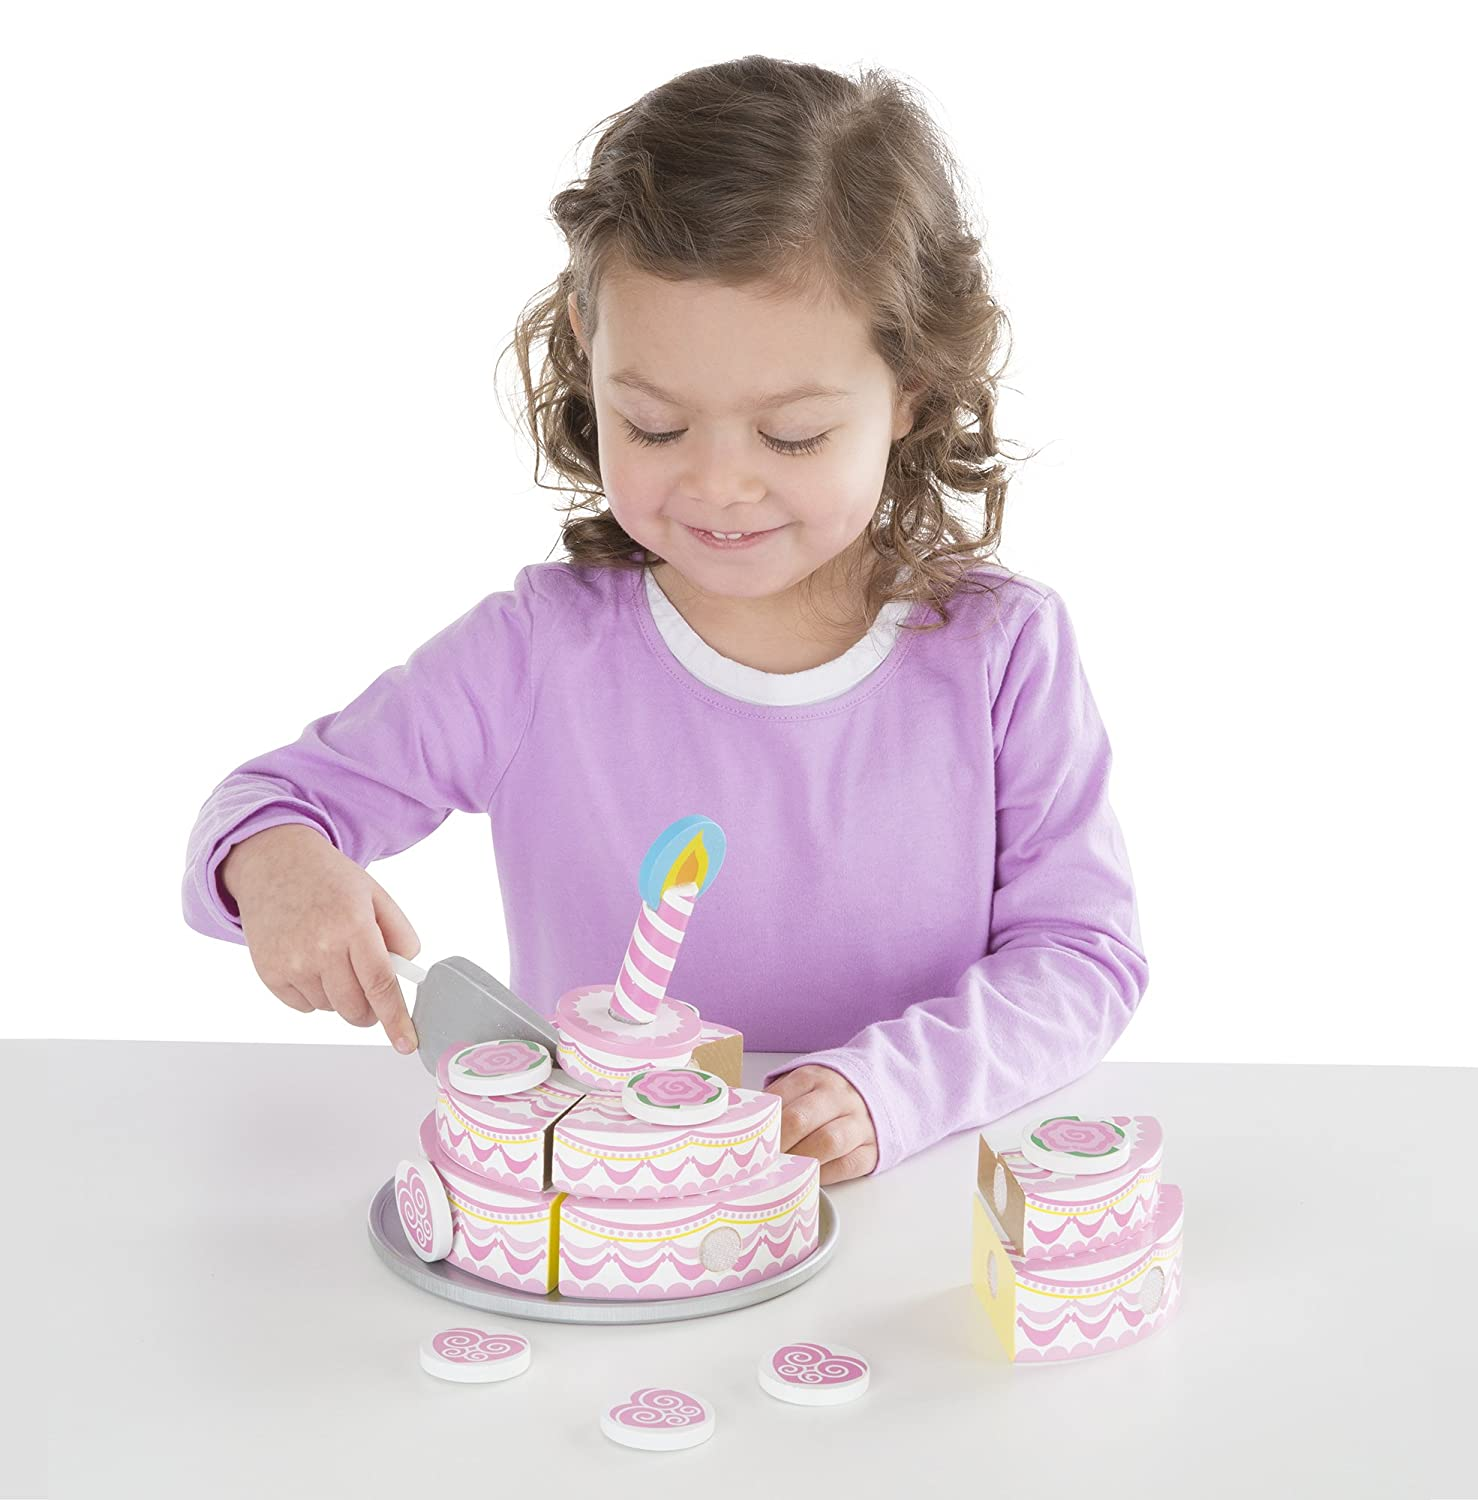 Melissa & Doug Triple Layer Party Cake perfect gift 3 year old girl